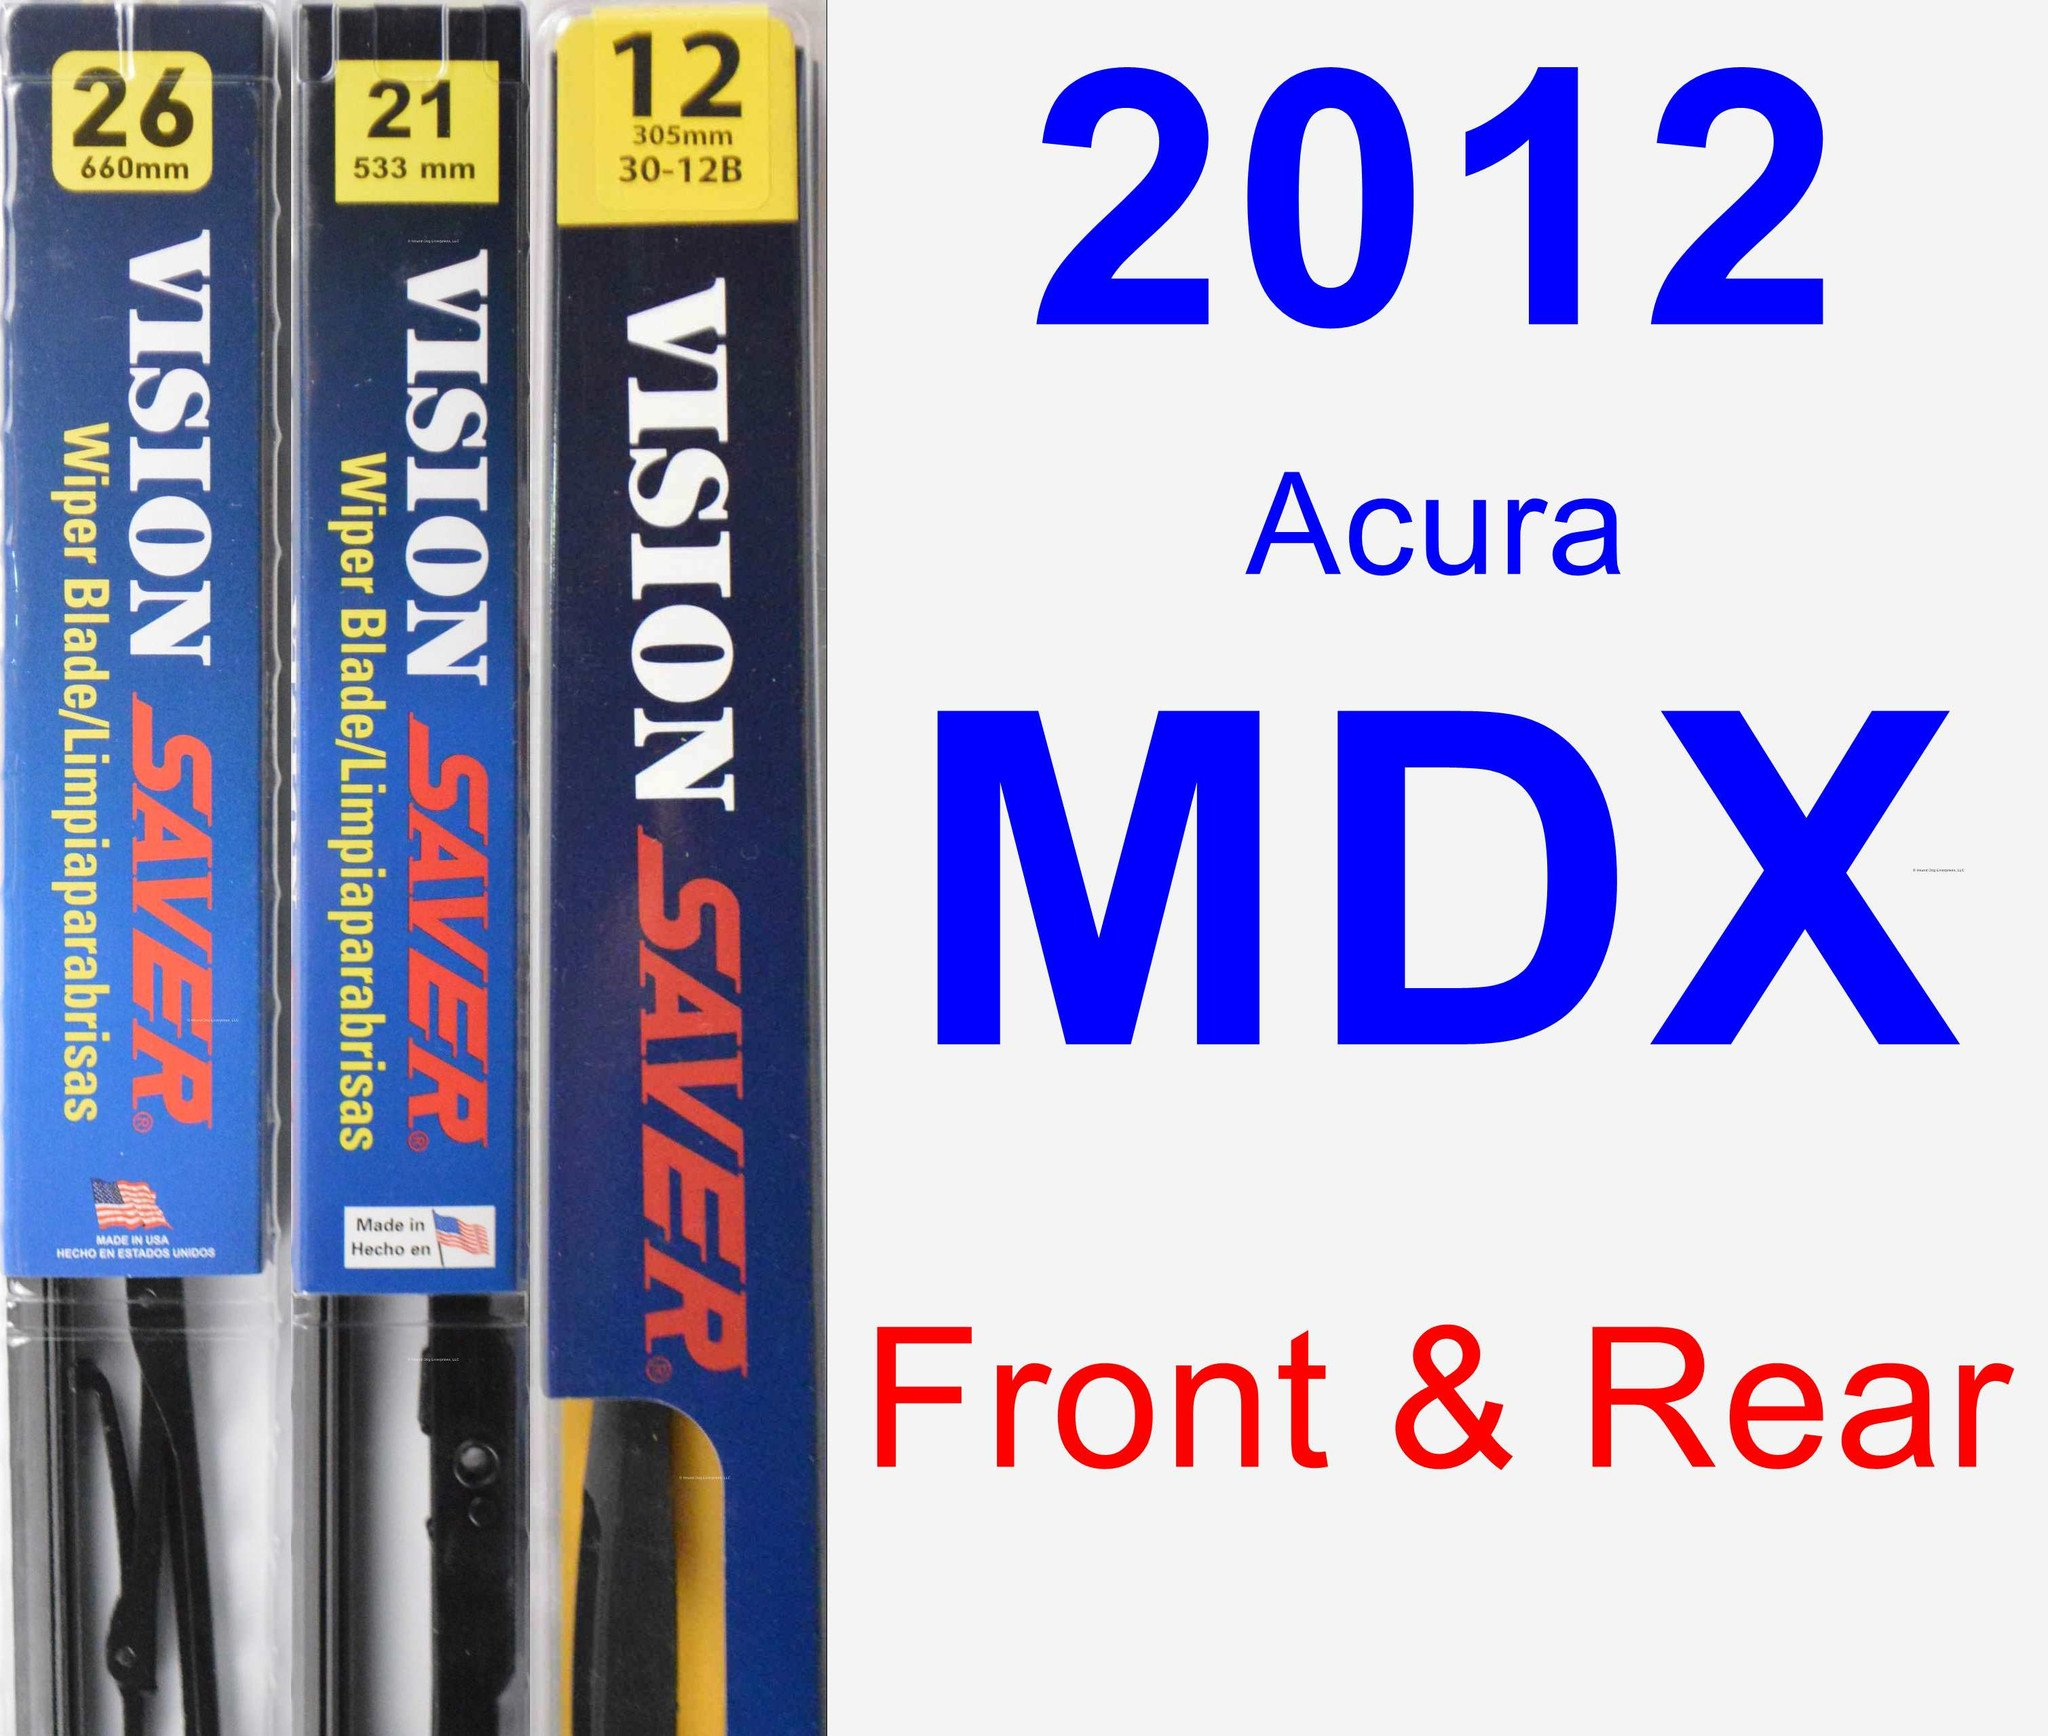 2012 Acura MDX Wiper Blade Set/Kit (Front & Rear) (3